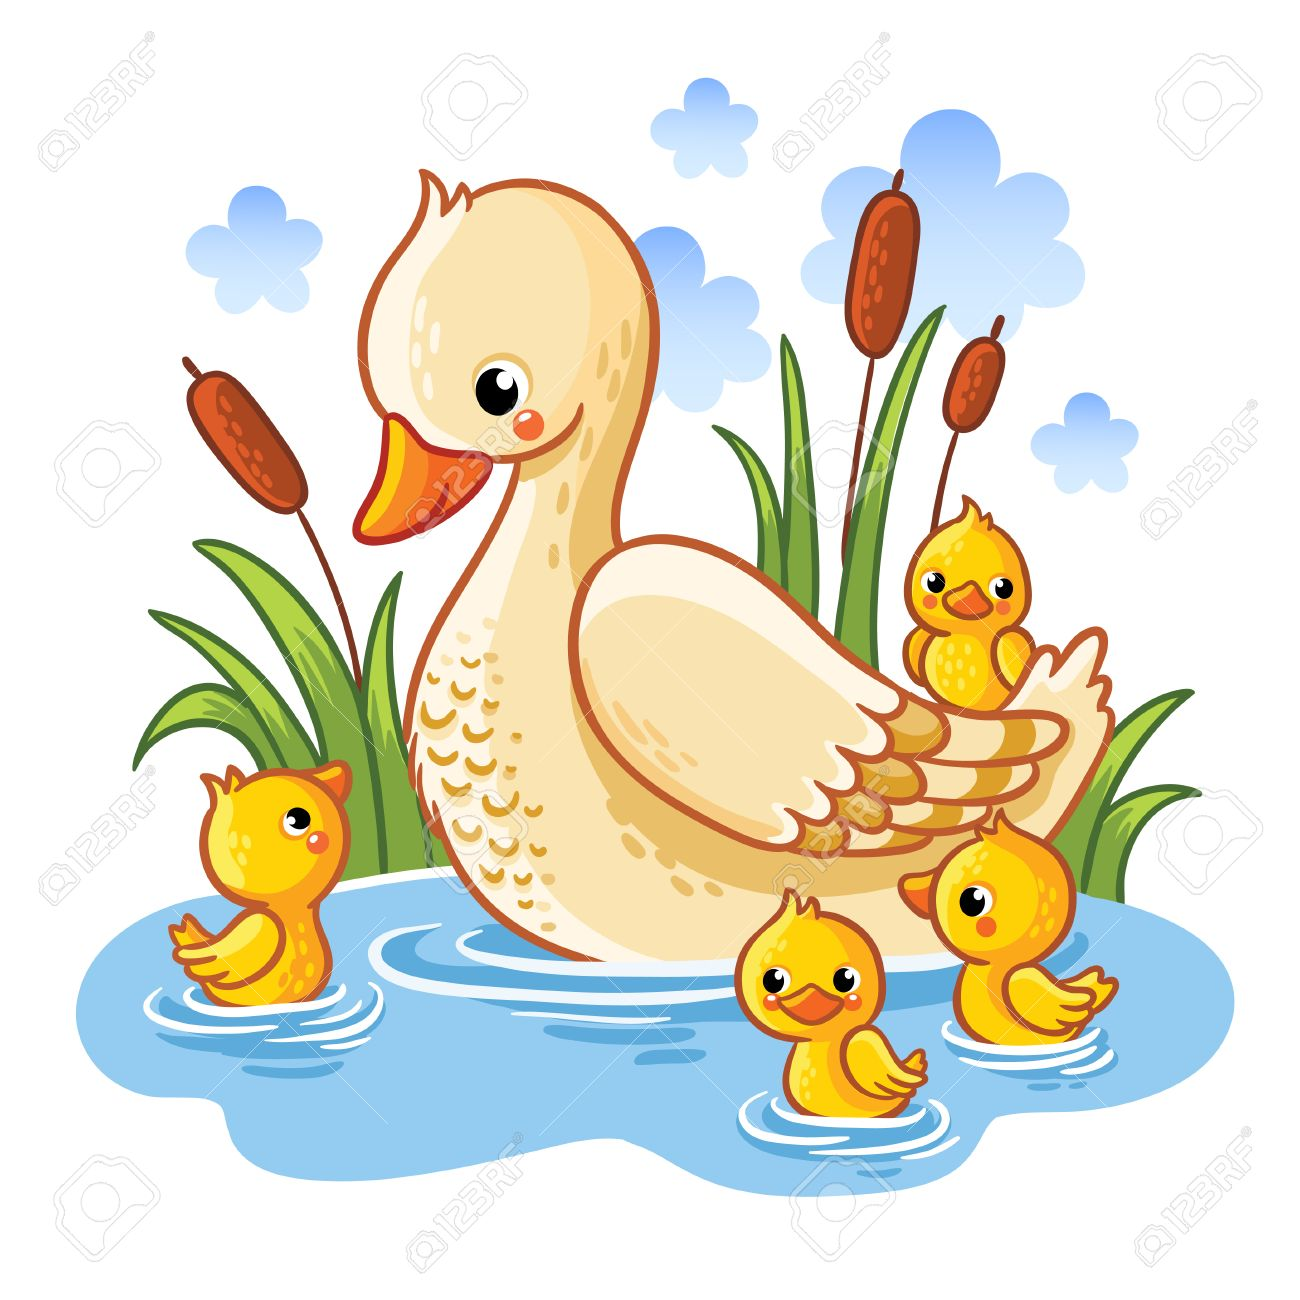 Vector Illustration Of A Duck And Ducklings. Mother Duck Swims ... for Duck And Duckling Clipart  111ane